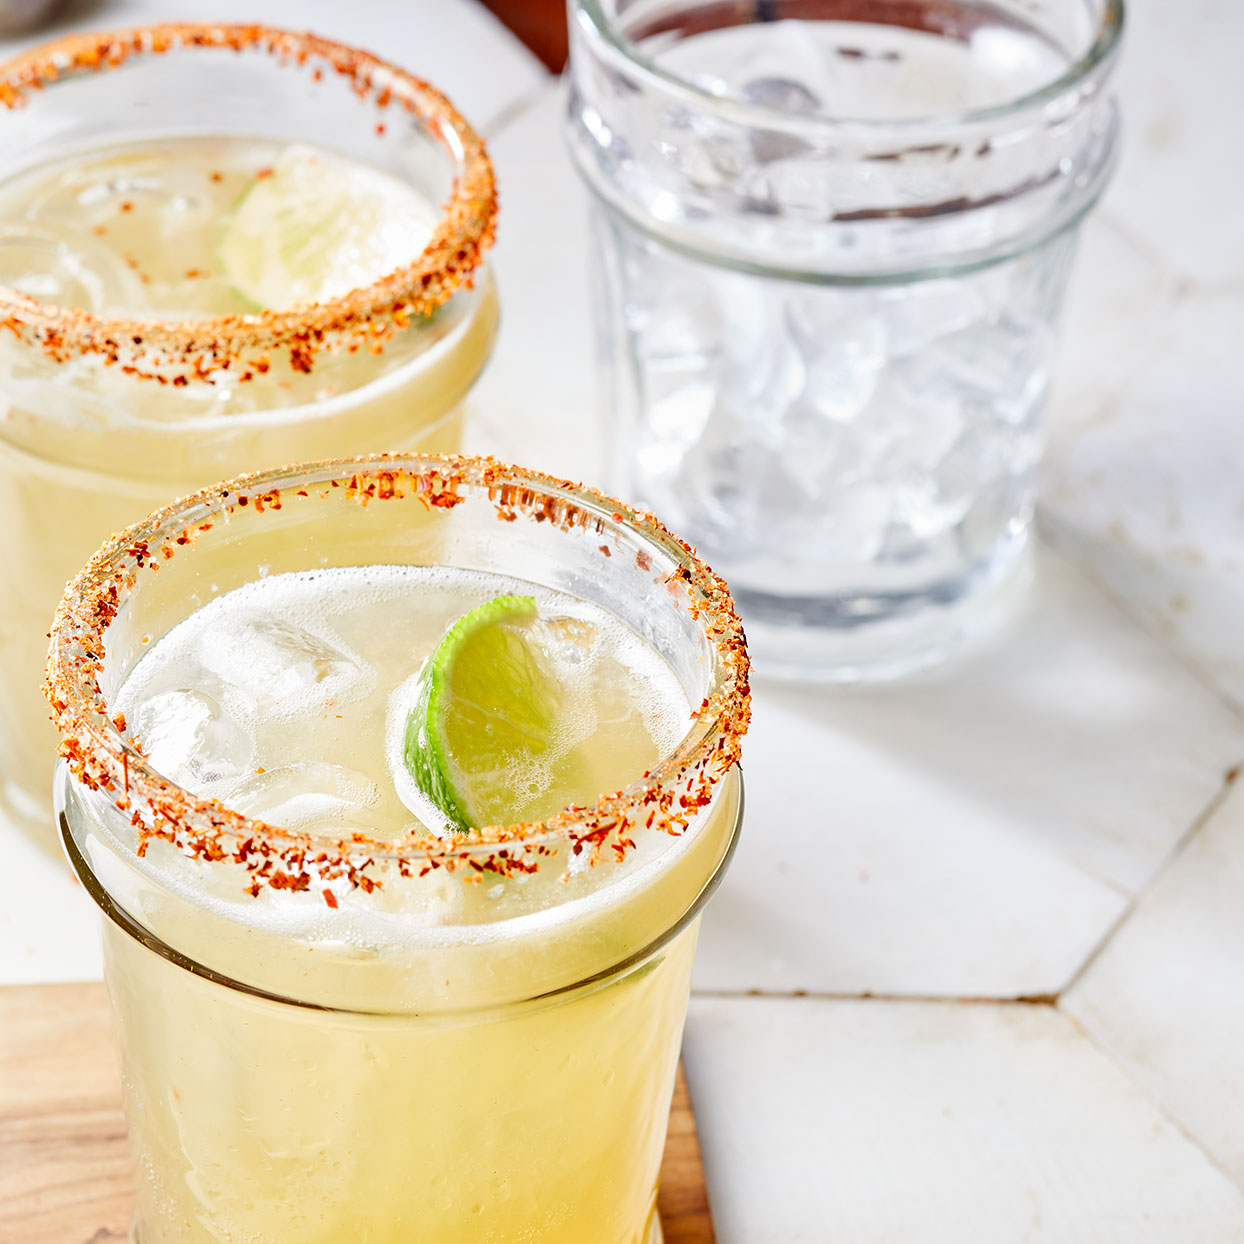 This easy margarita recipe is like vacation in a glass. A bit of the chile-lime seasoning Tajín on the rim of your glass contrasts with the sweet orange and agave. Source: EatingWell Magazine, May 2020